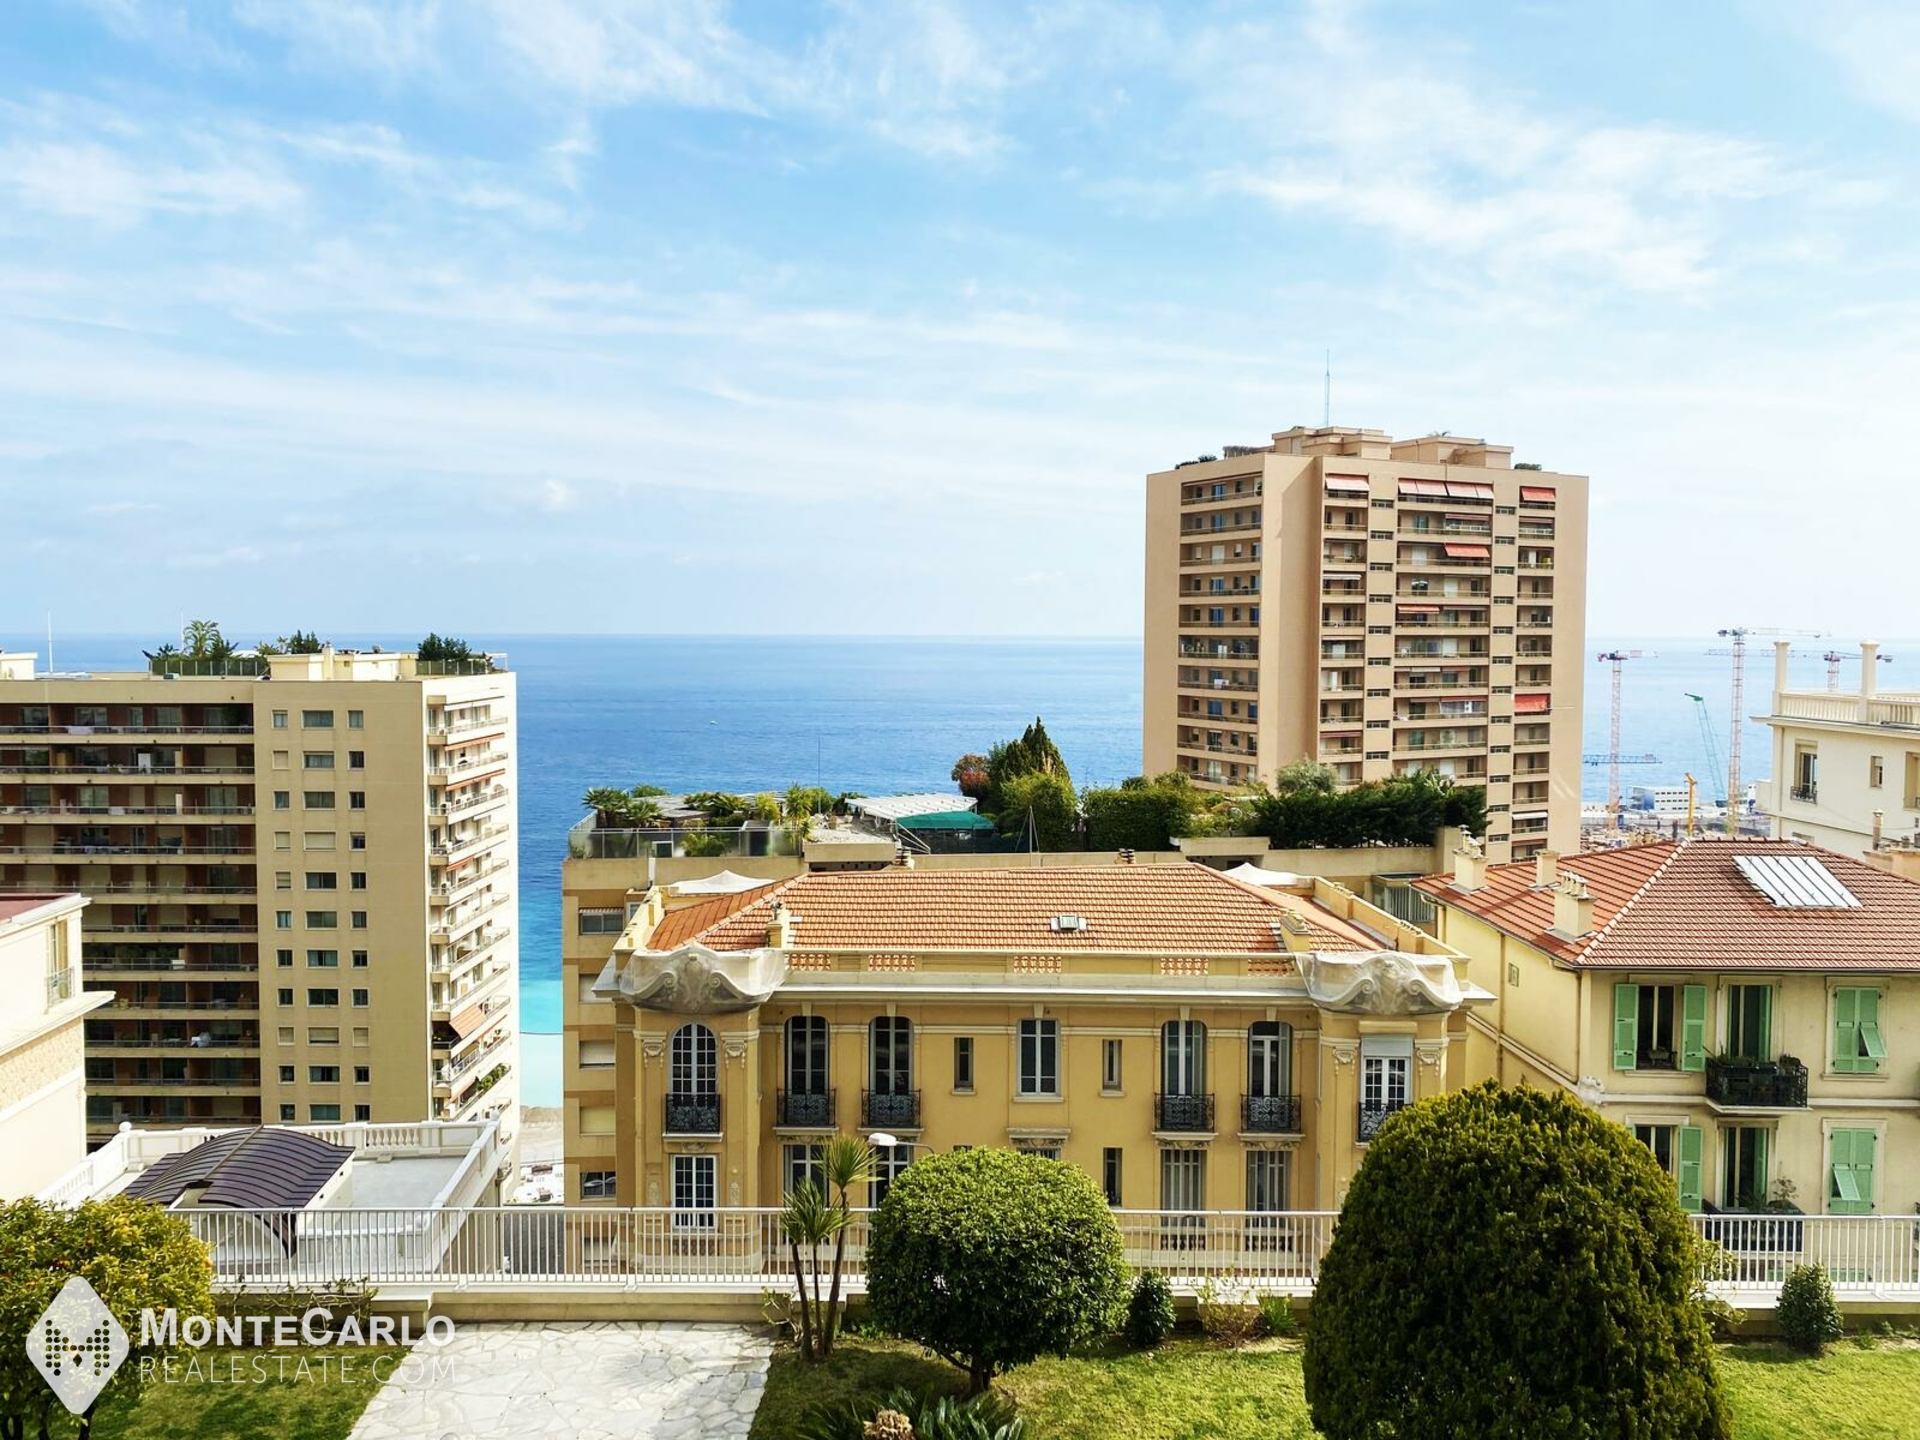 Rental Les Abeilles - Apartment / 3 rooms : 6 500 € | Monte-Carlo Real Estate [AAL1518]